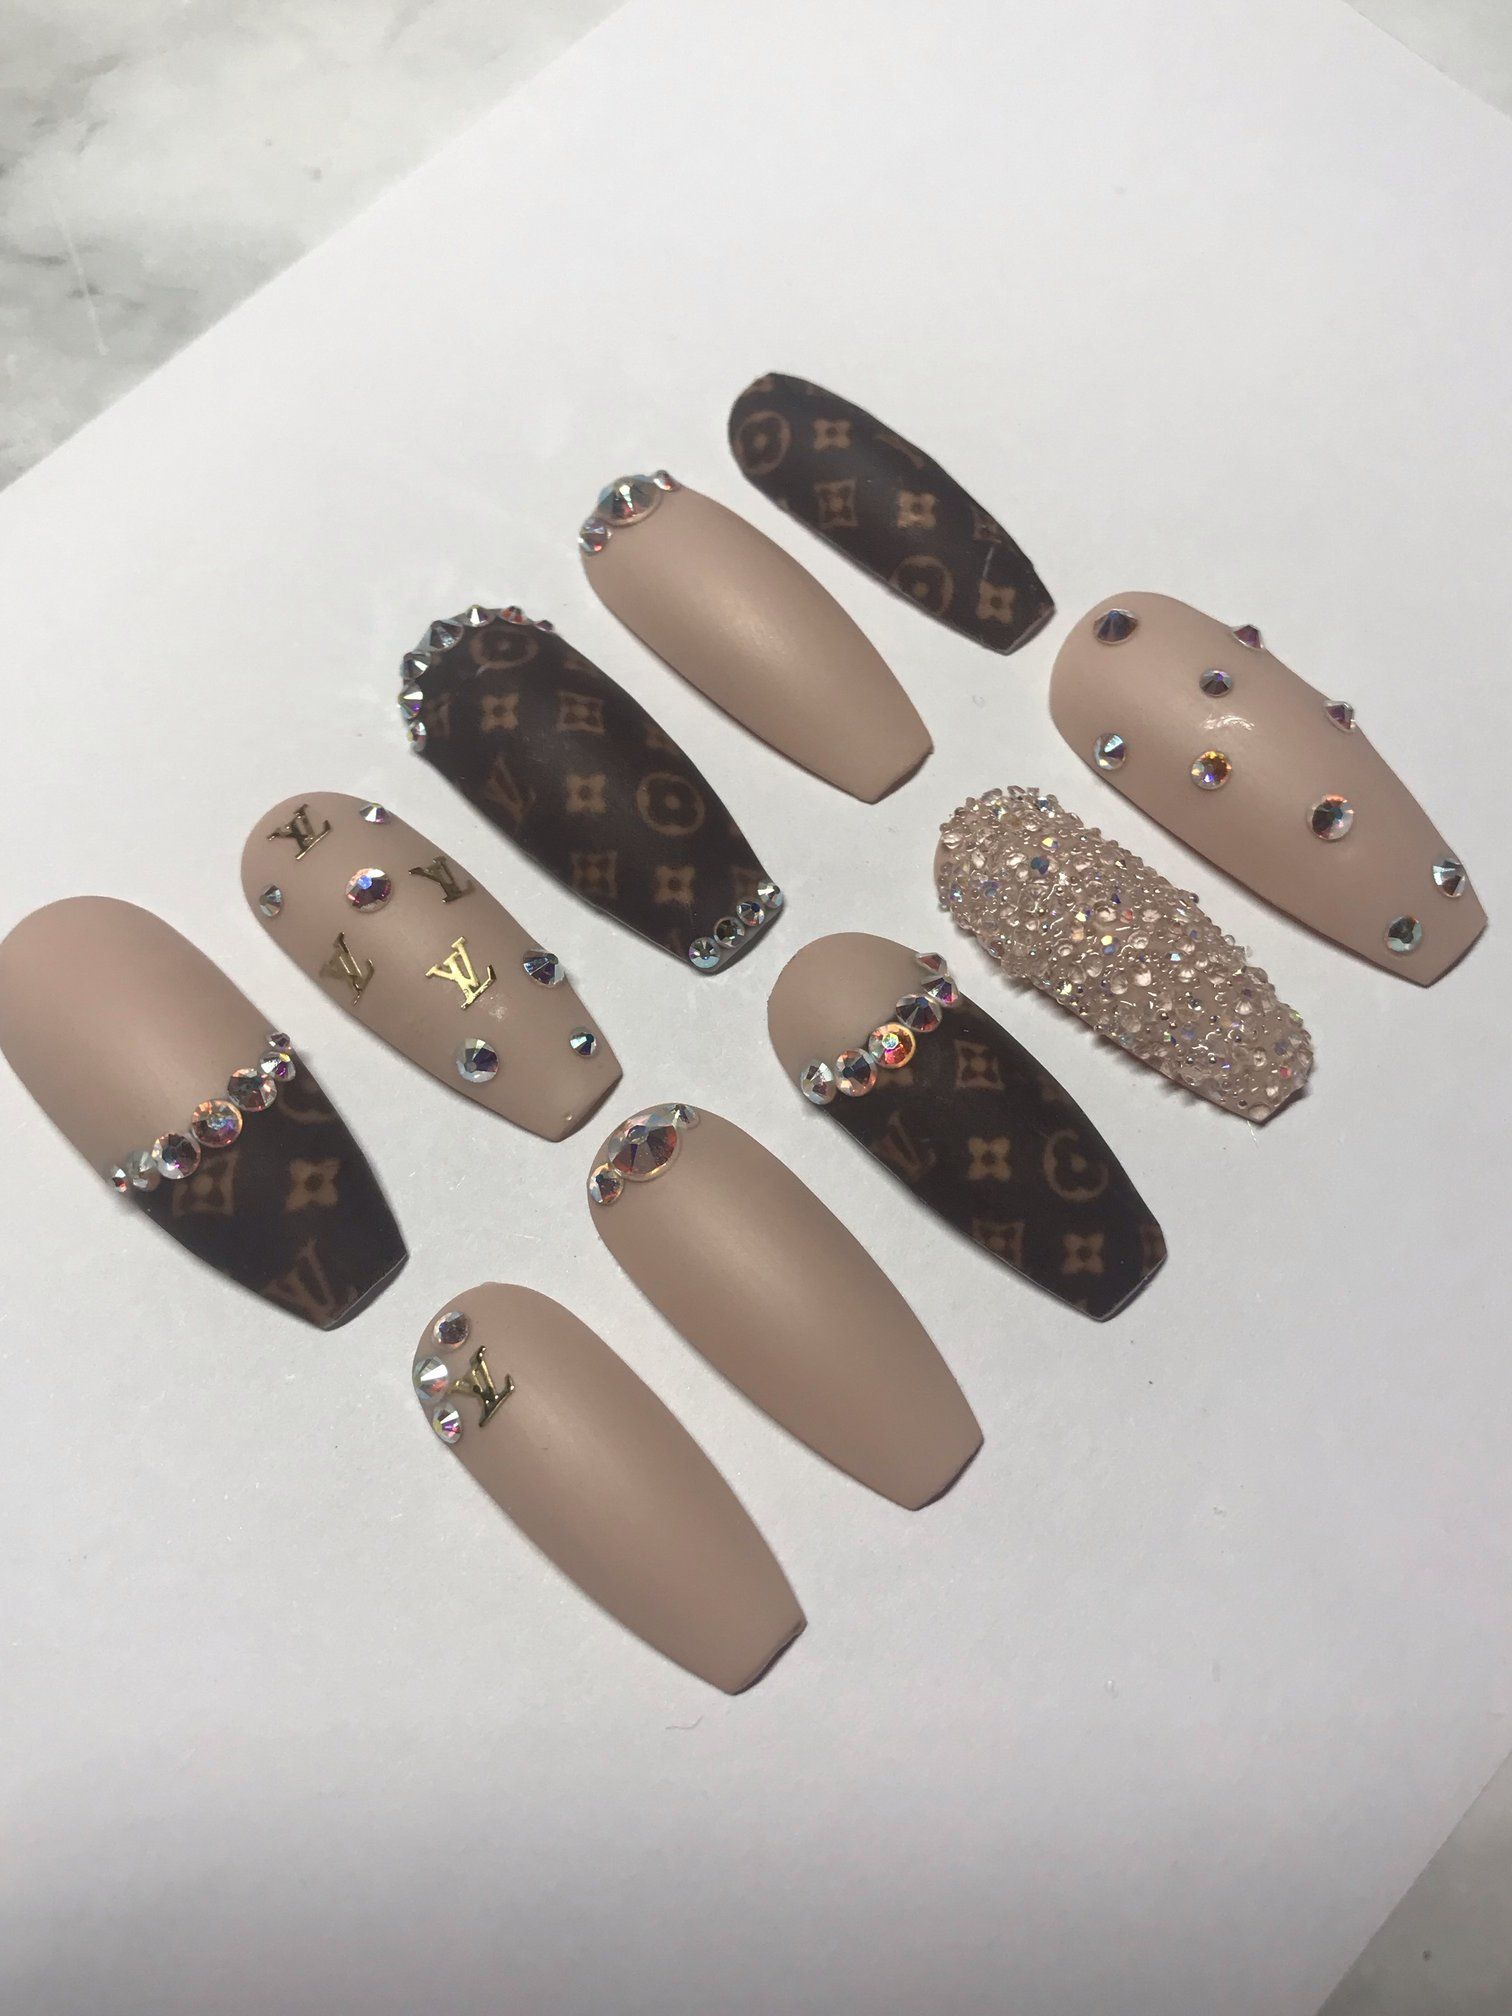 Handemade Louis Vuitton Waterslide Nail Decals With Accents Of Gold Lv S And Swarovski Crystals All Nails Are Sh Louis Vuitton Nails Gucci Nails Chanel Nails